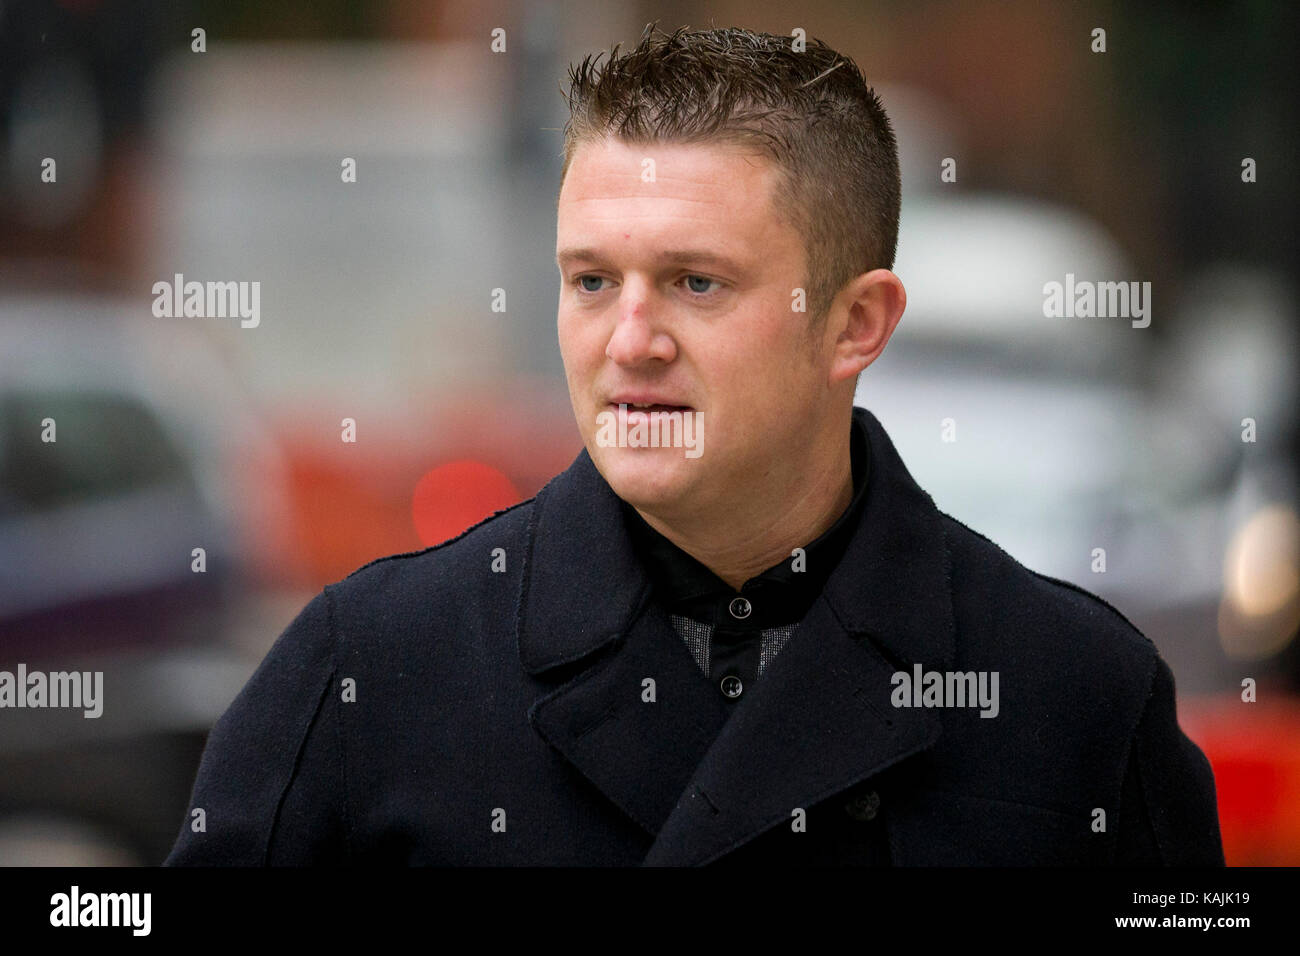 Former EDL leader Tommy Robinson arrives at Westminster Magistrates Court in London on 16 10 2013 after being charged - Stock Image